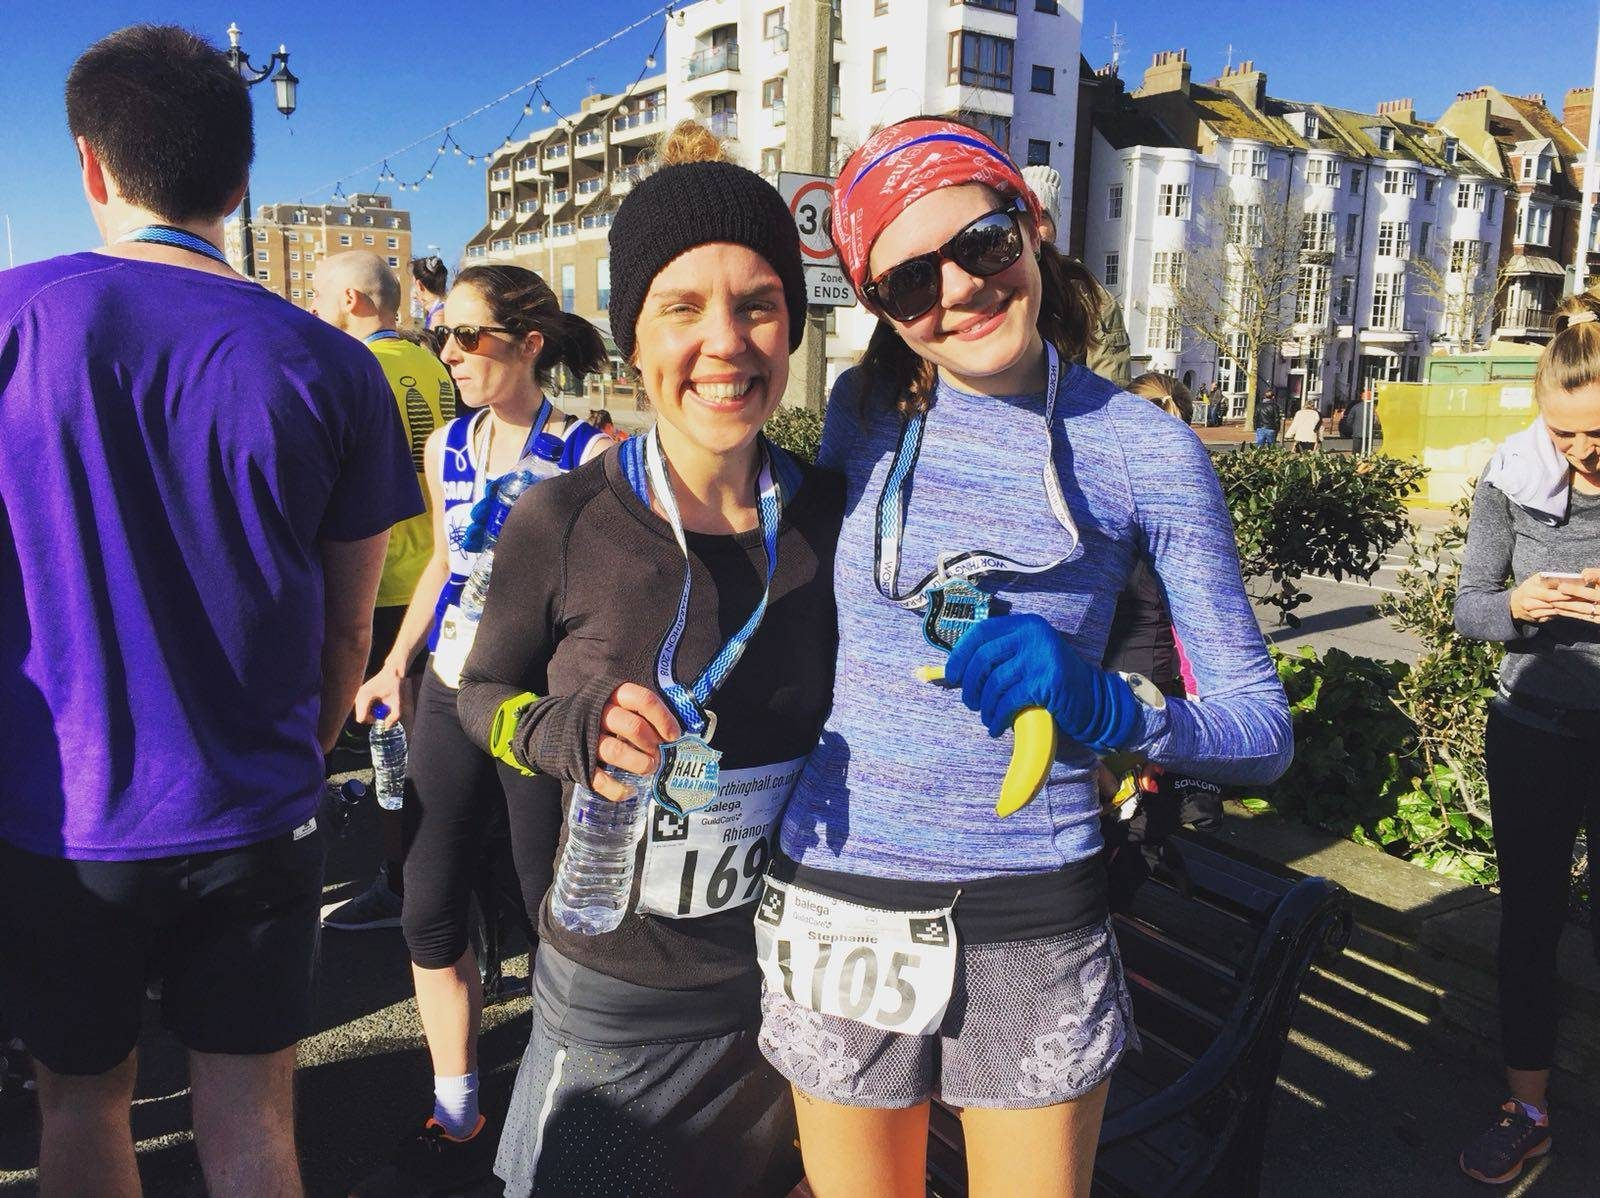 Another day at the seaside: Worthing Half race report